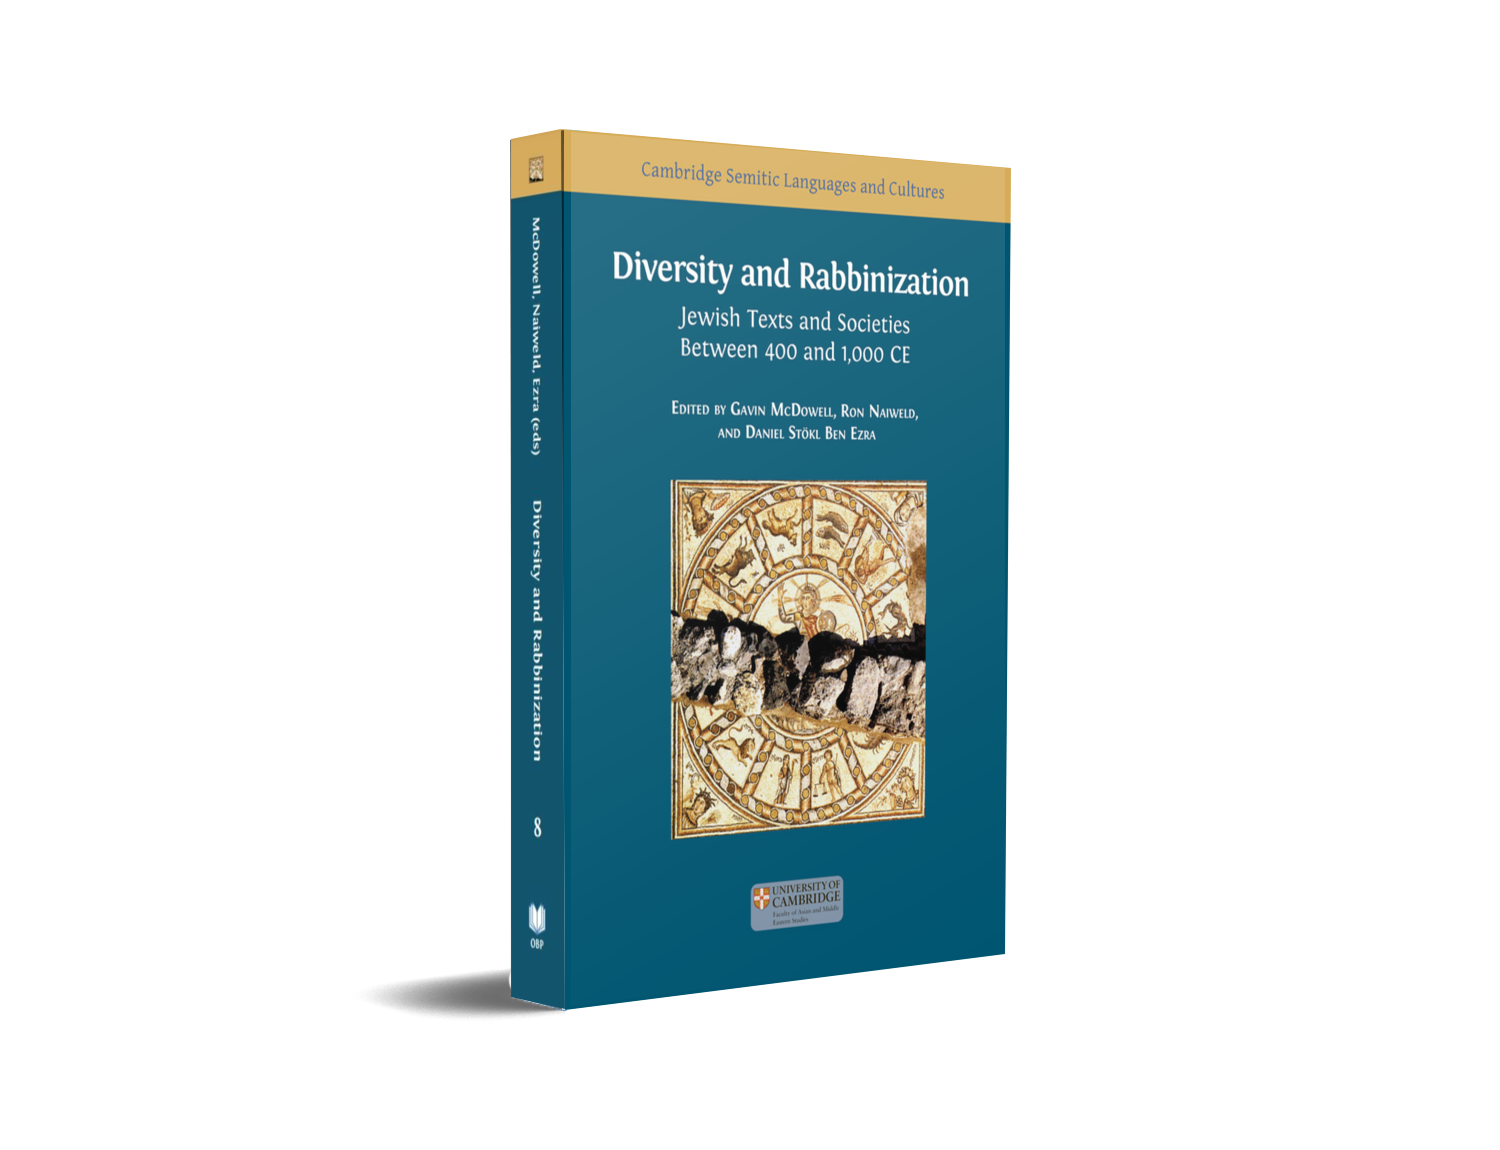 Diversity and Rabbinization: Jewish Texts and Societies between 400 and 1000 CE